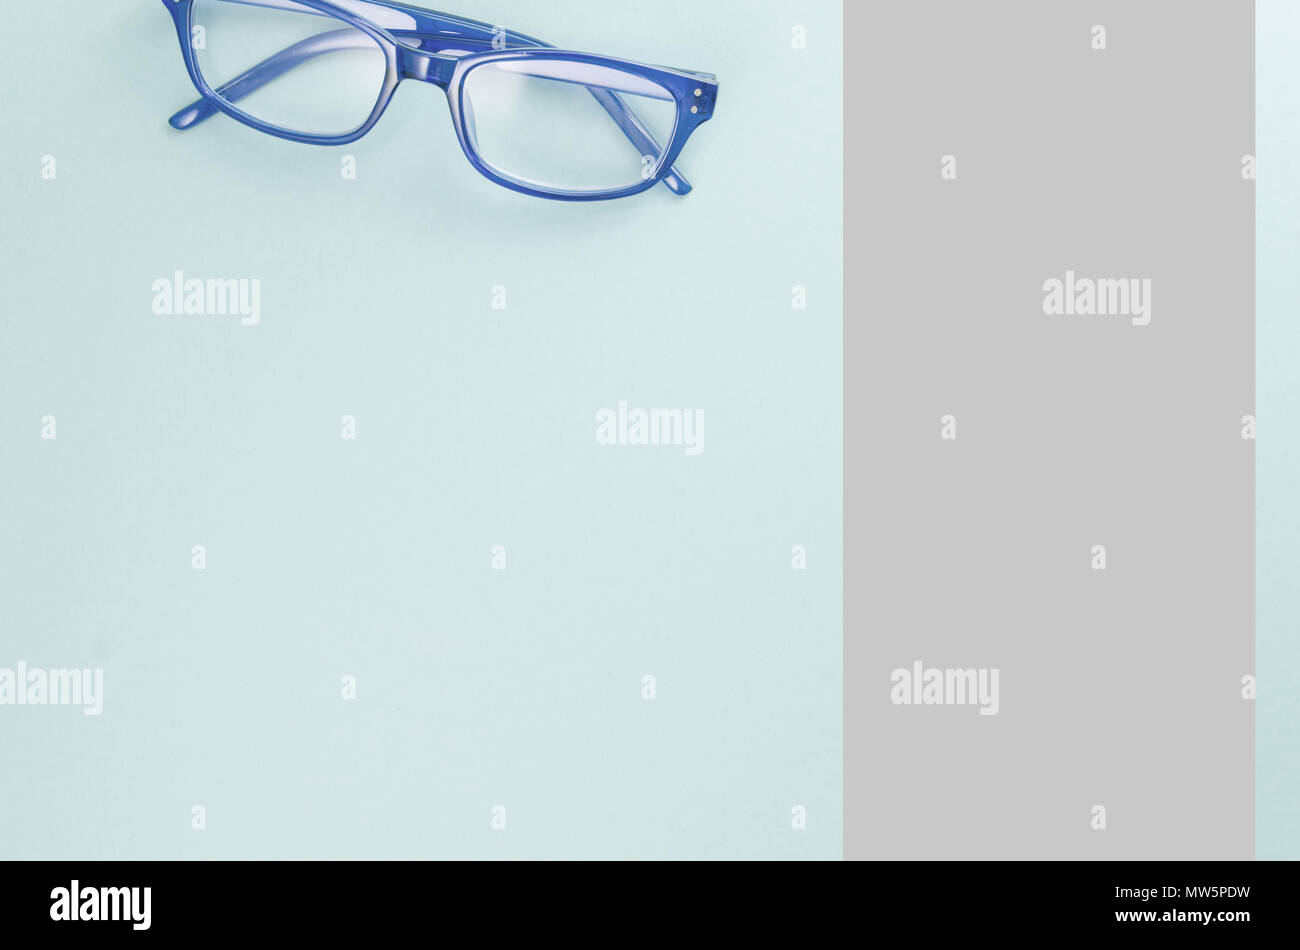 pair of blue frame eyeglasses on a light blue surface - directly above - Stock Image